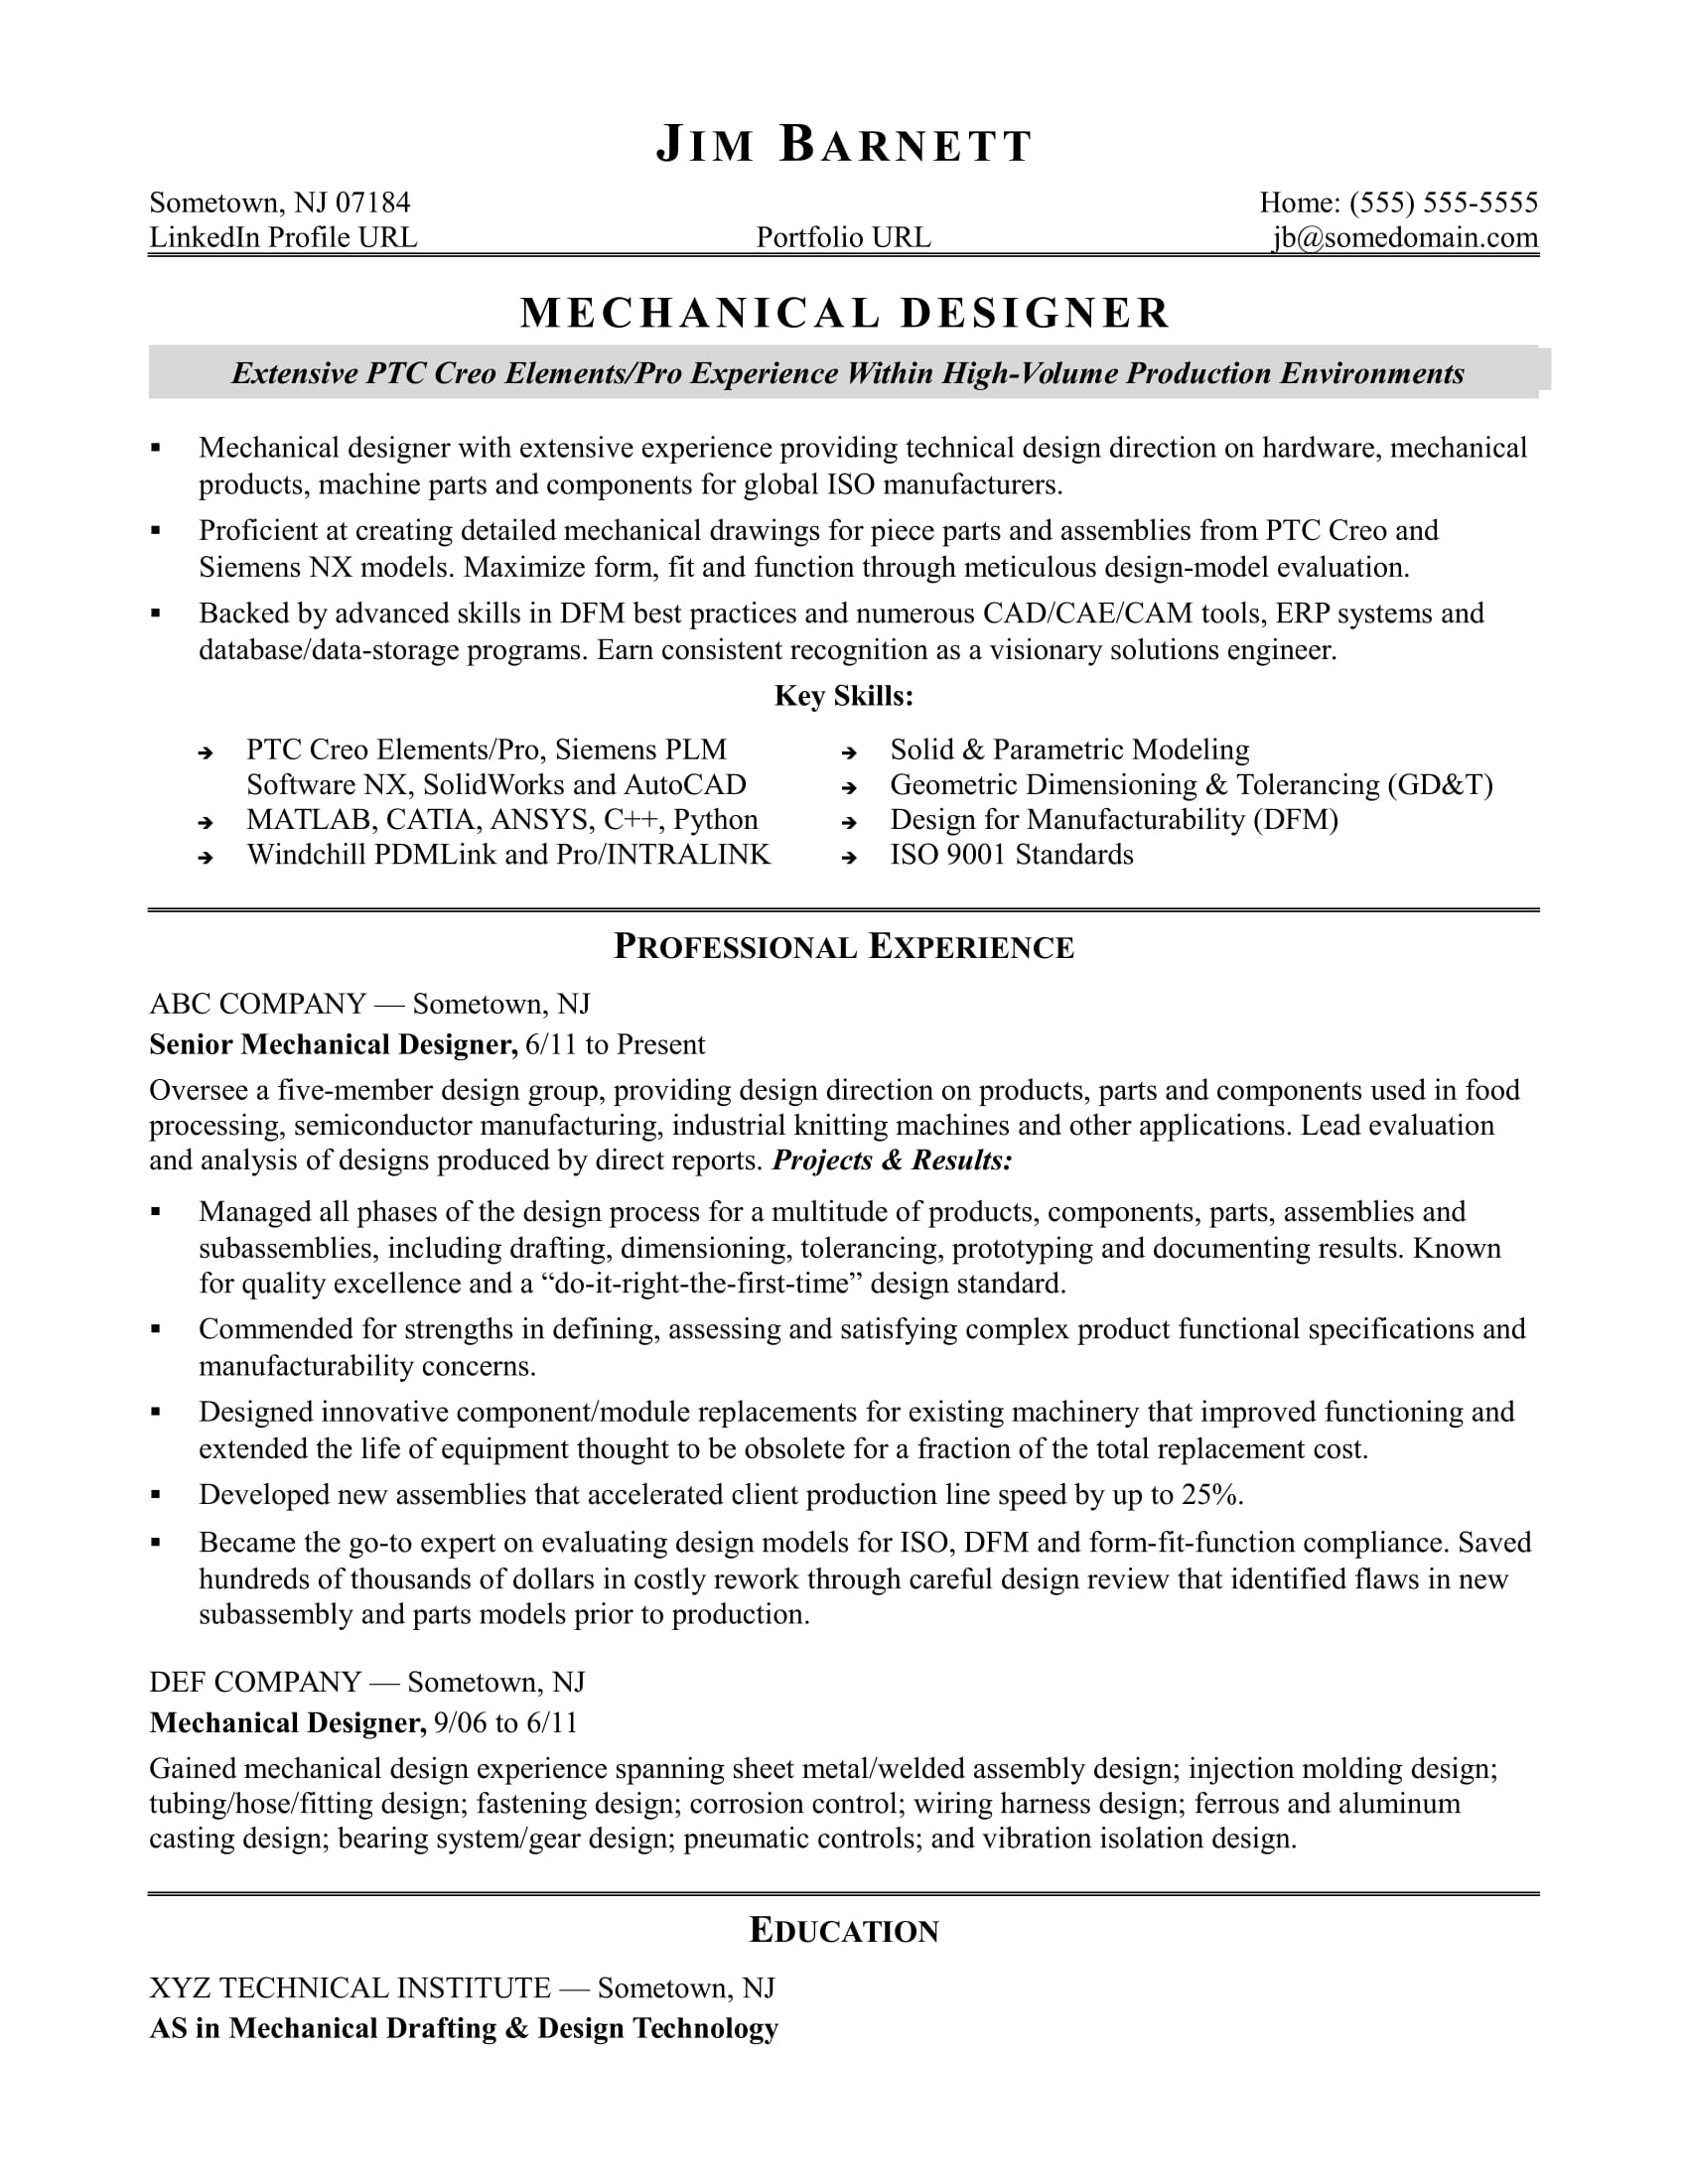 Wonderful Sample Resume For An Experienced Mechanical Designer